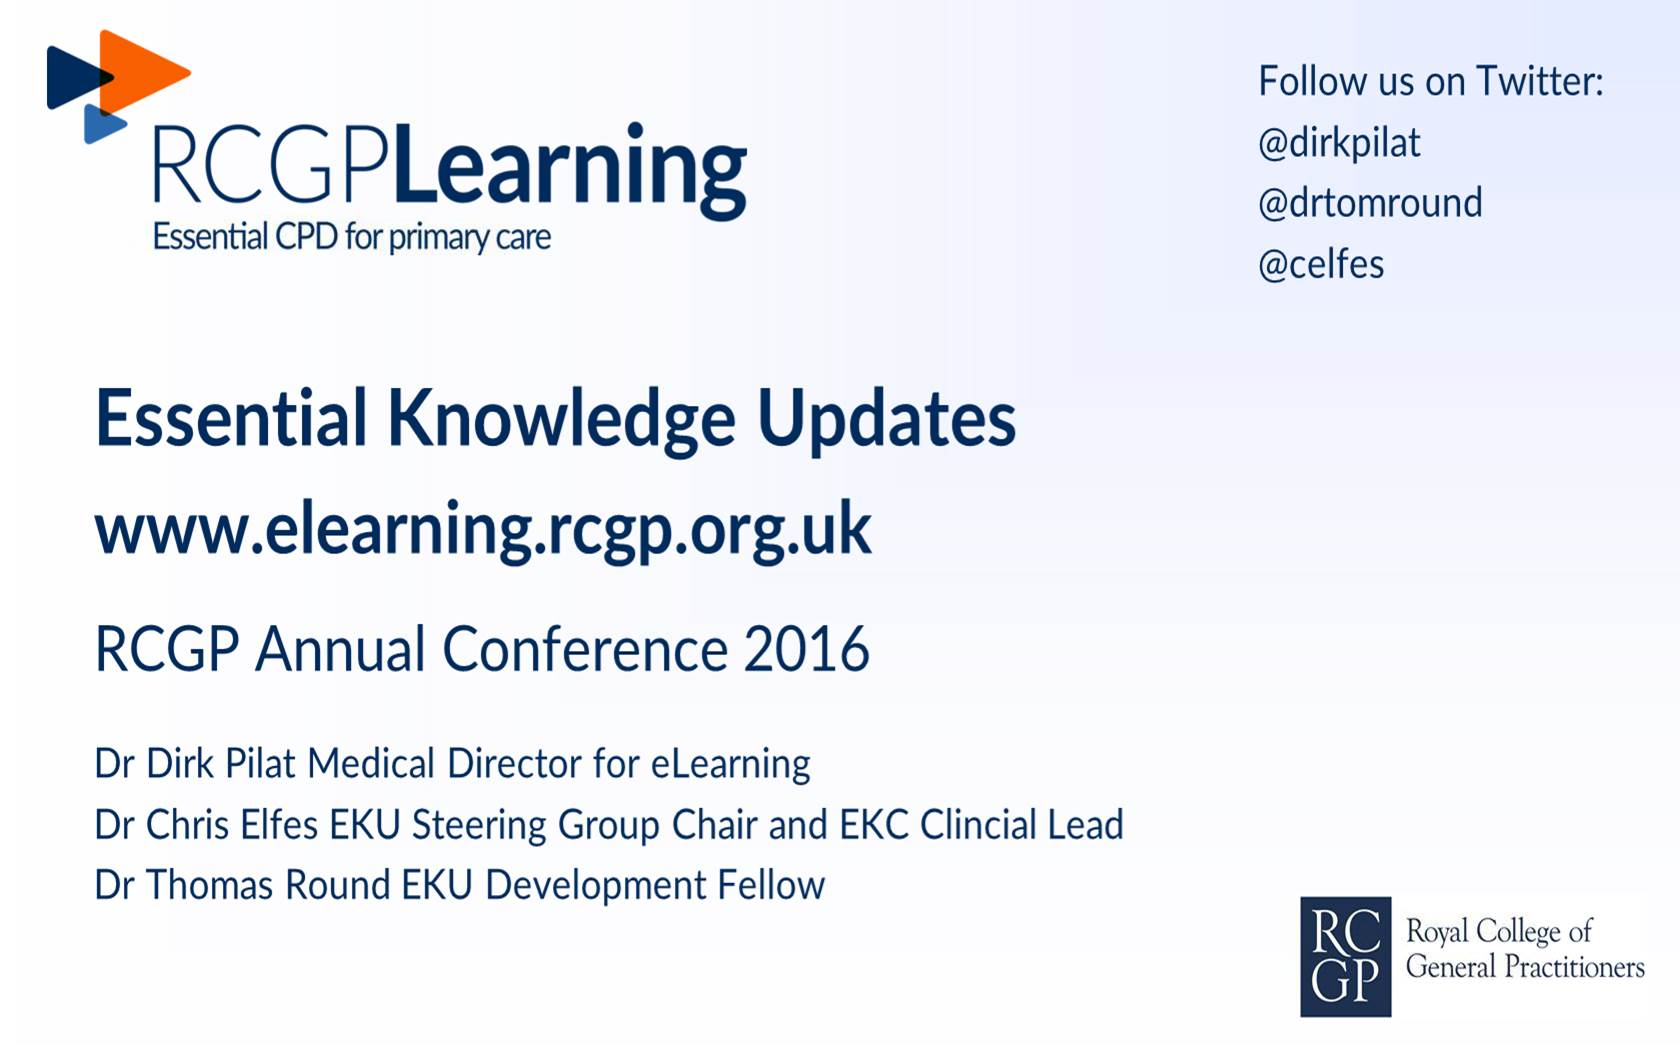 EKU Programme RCGP Annual Conference Session 2016